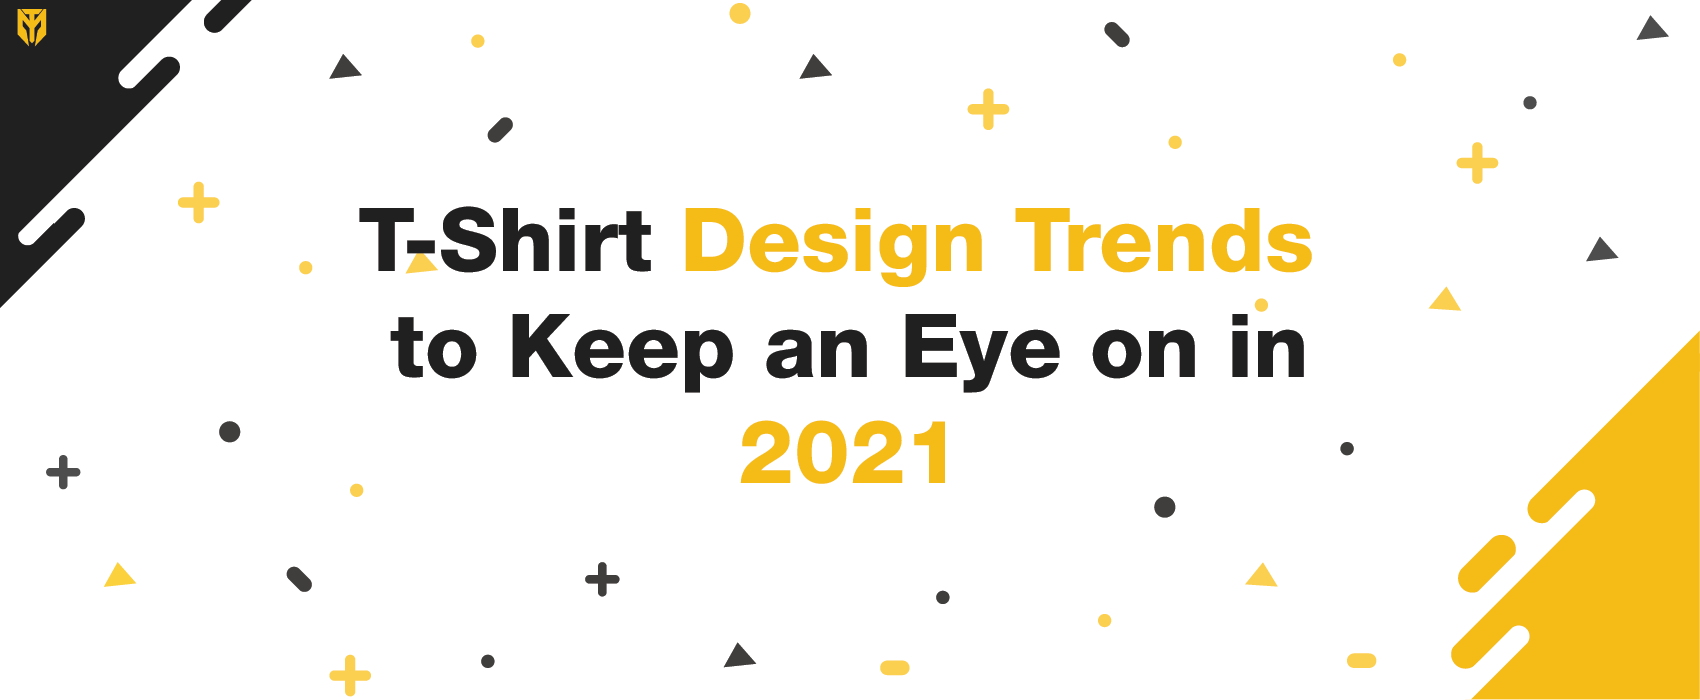 T-Shirt Design Trends to Keep an Eye on in 2021